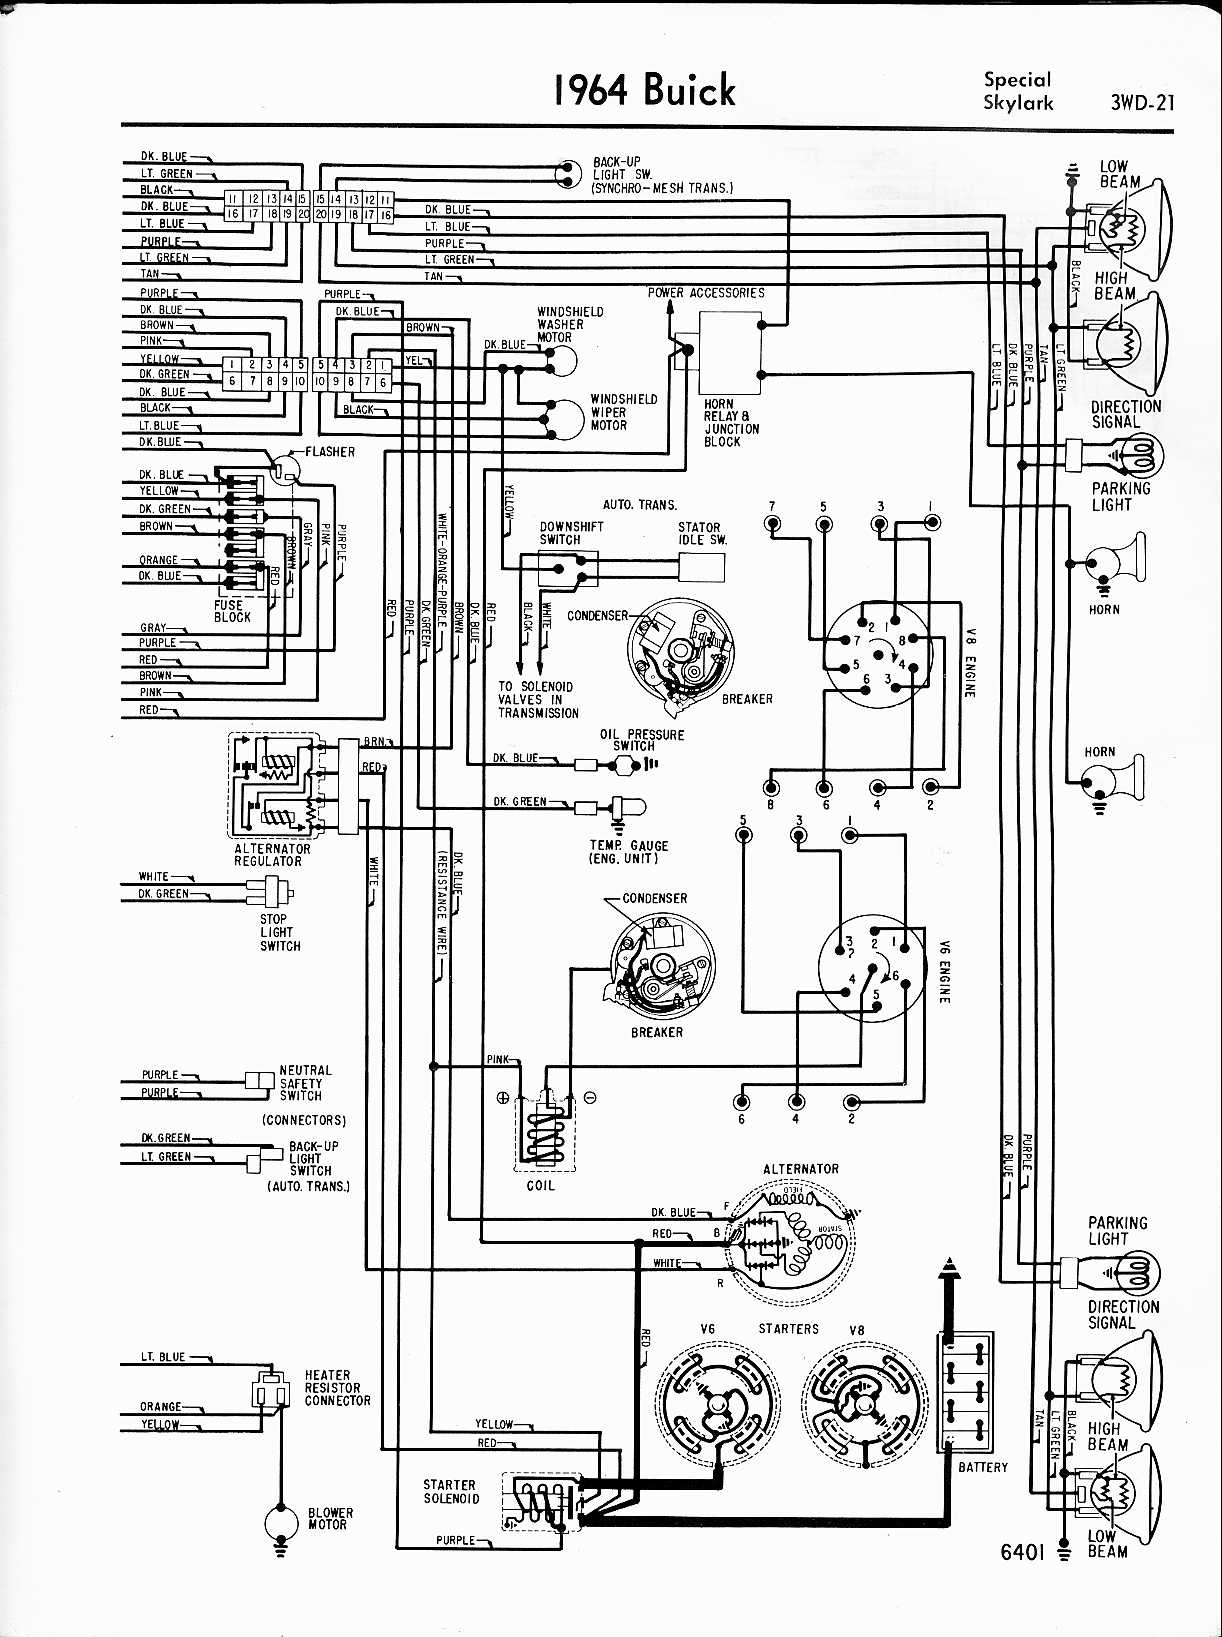 Engine Wiring Diagram 1968 Buick Skylark Will Be A 72 Lemans 1966 Riviera Simple Rh David Huggett Co Uk